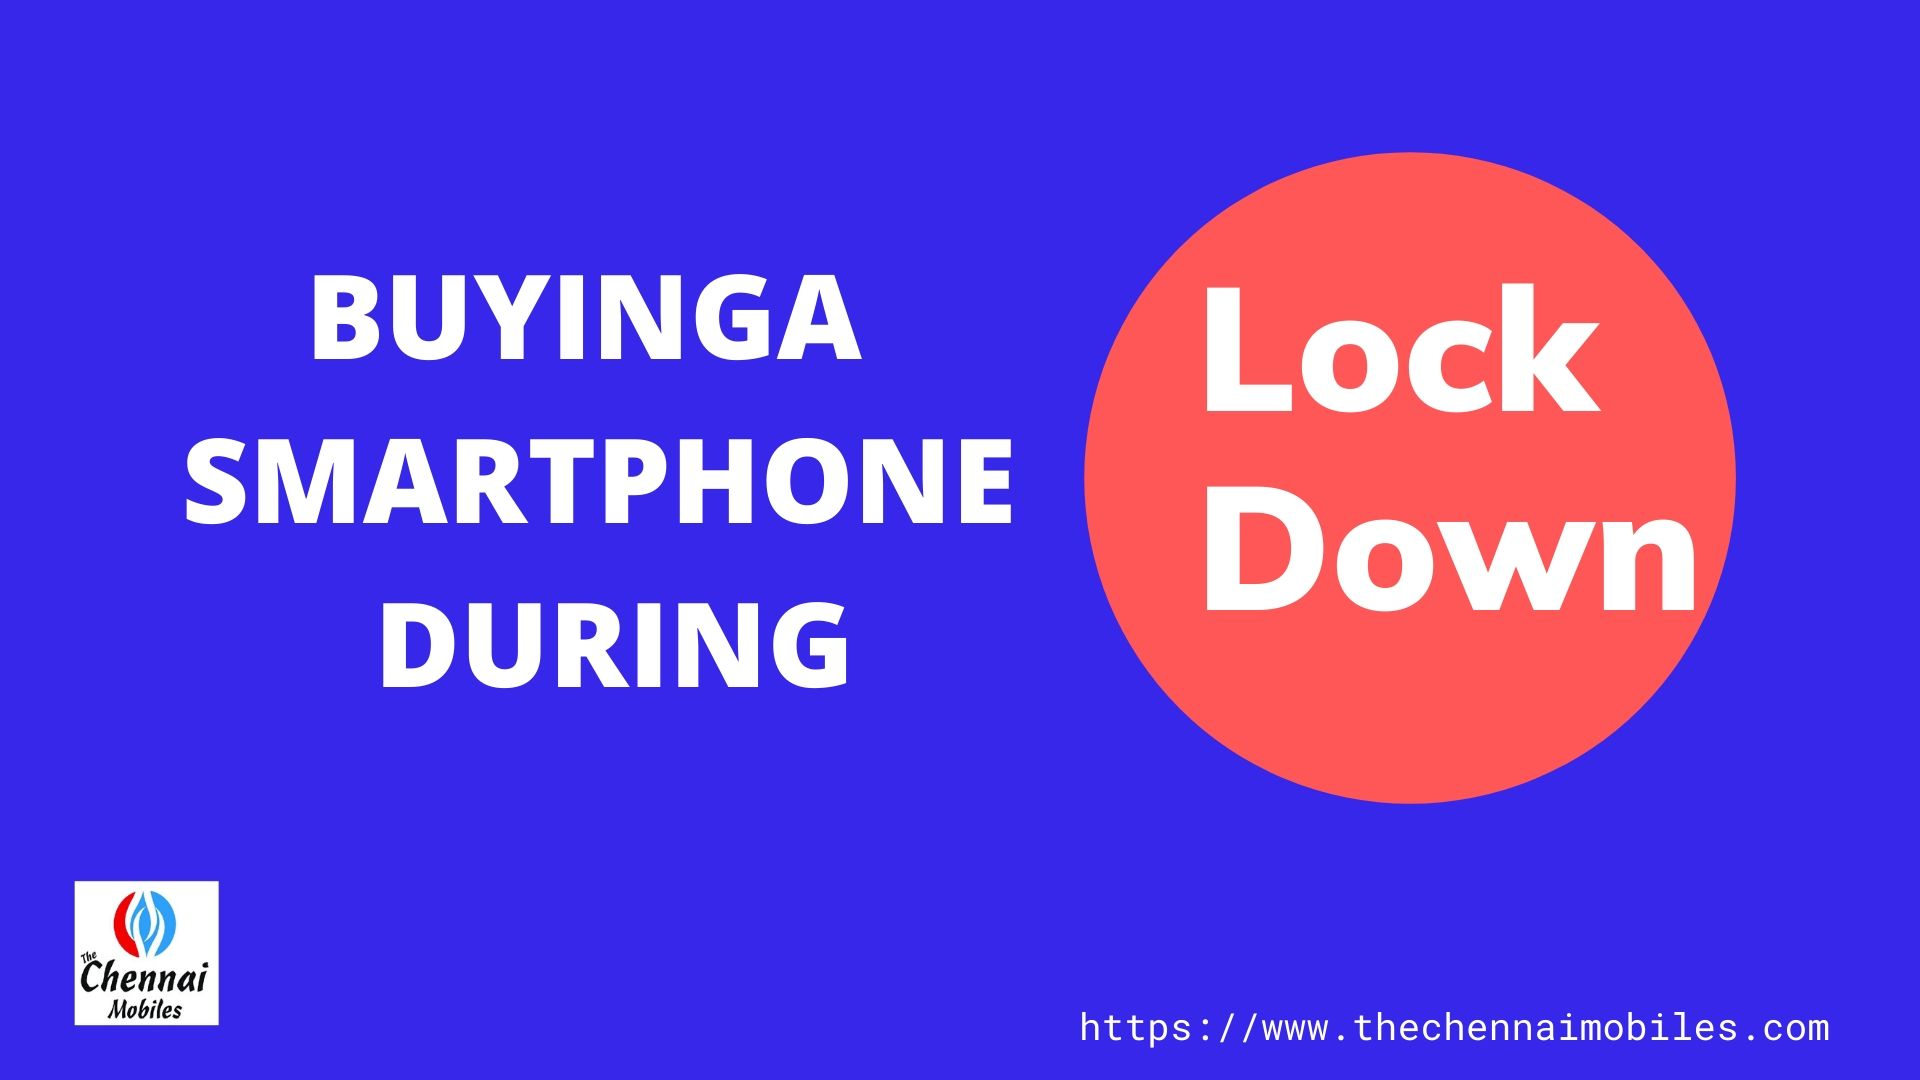 Buying a Smartphone During Lockdown?